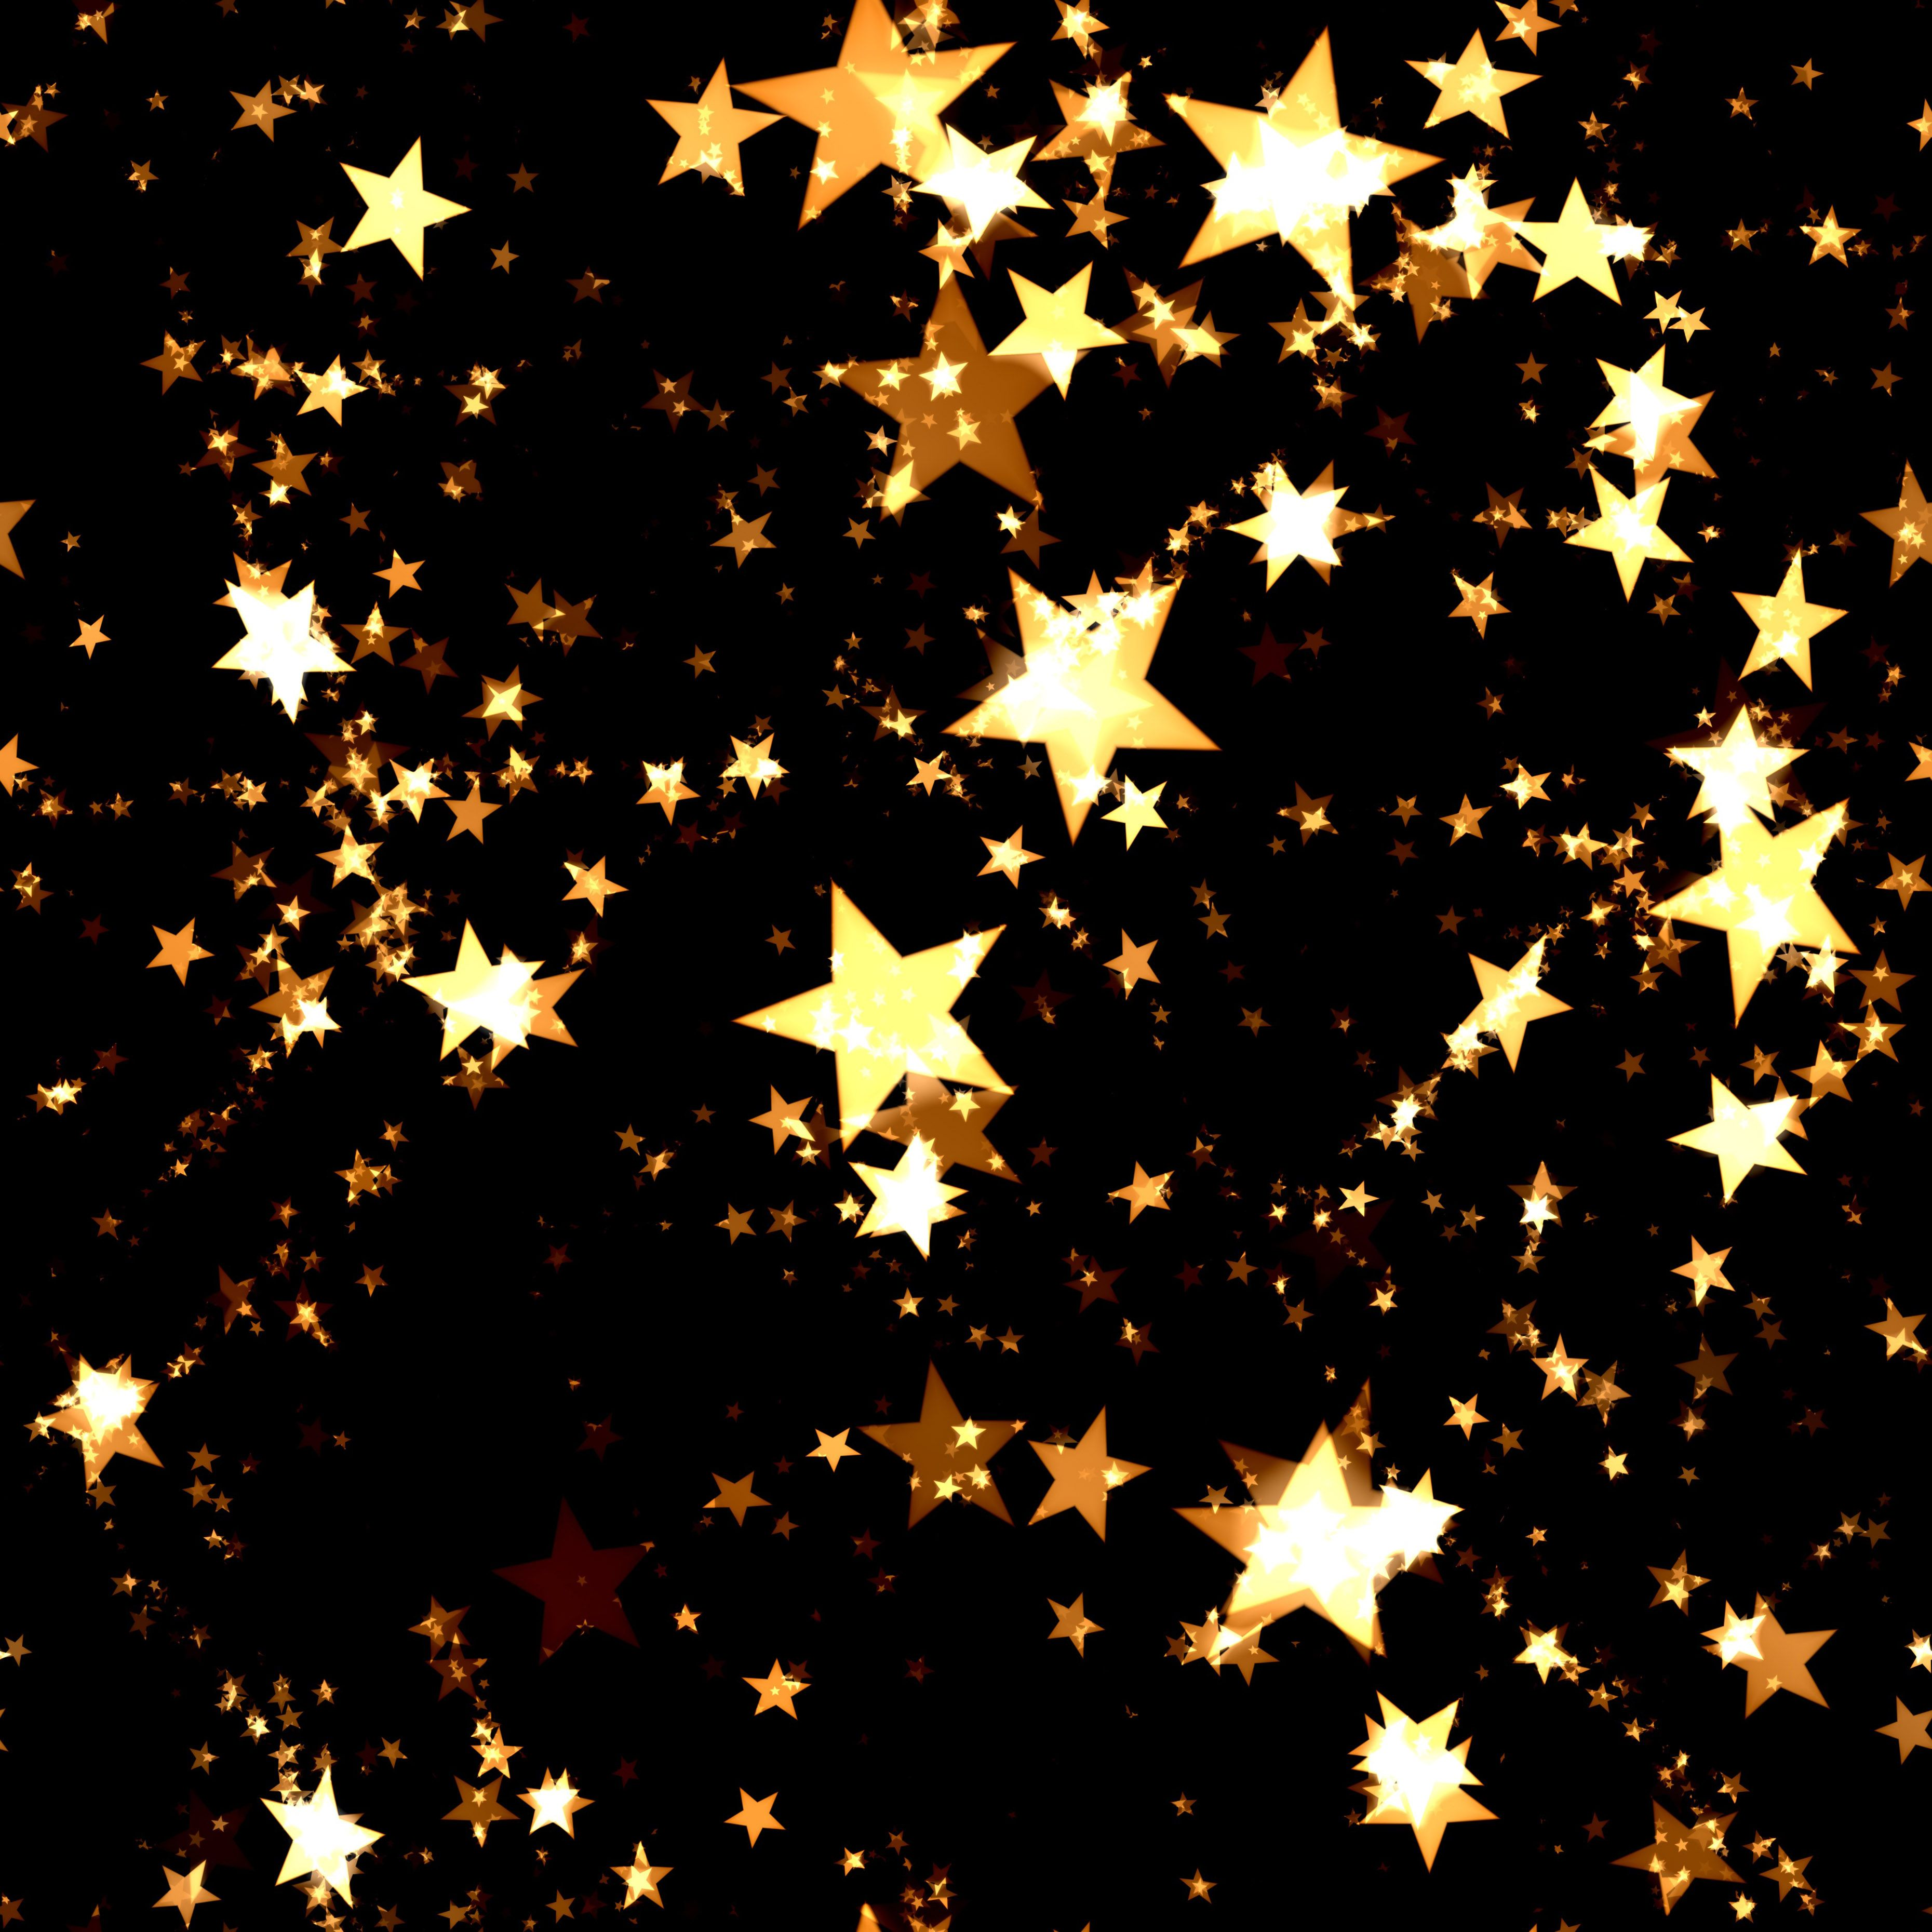 Stars Wallpapers Hd Desktop Backgrounds Images And Pictures